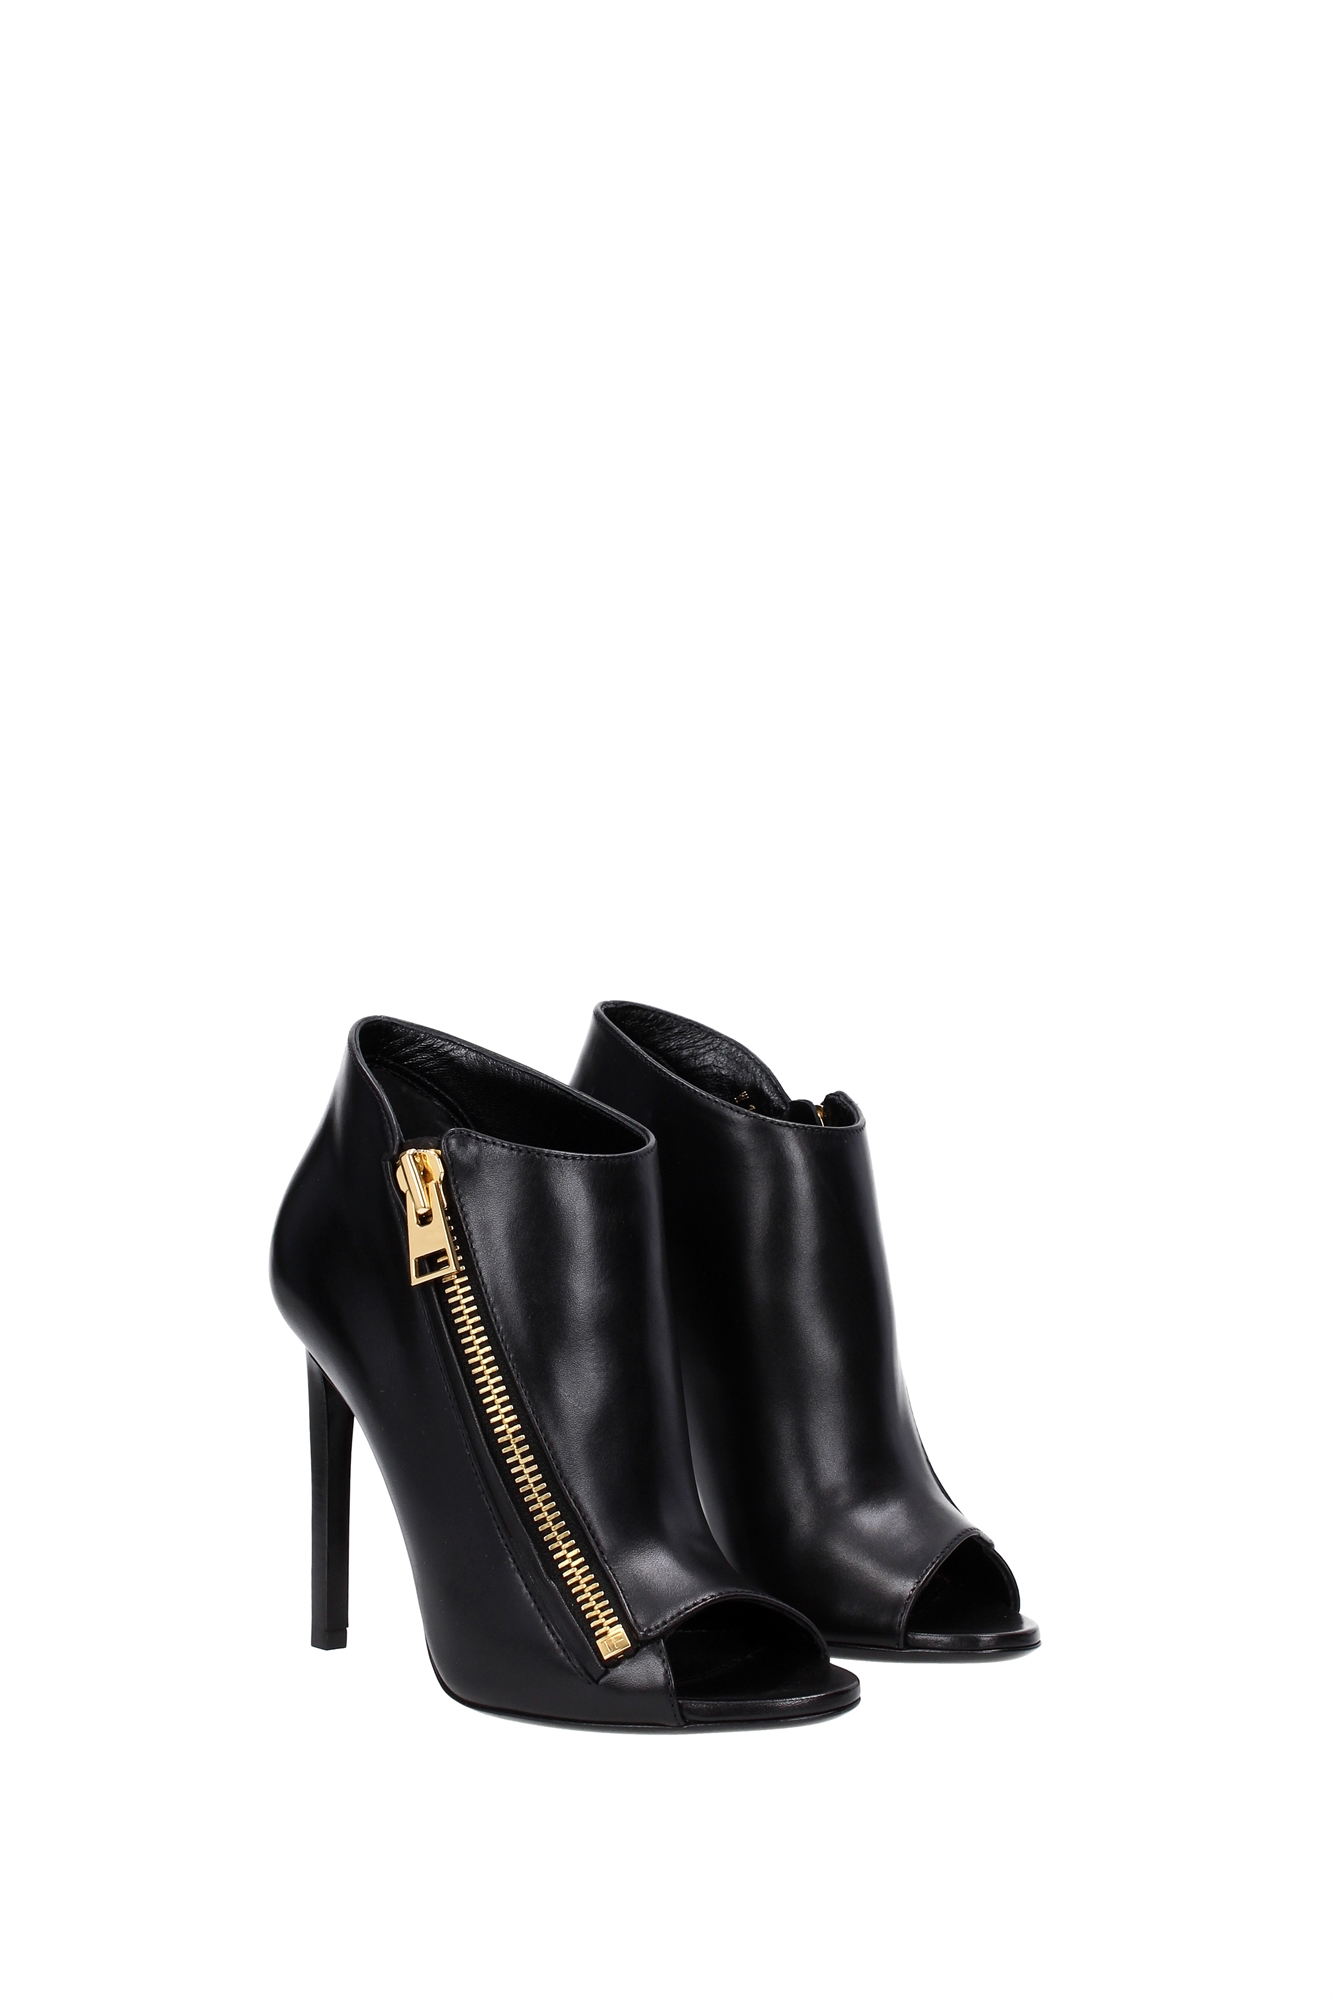 ankle boots tom ford leather black 215w1478tscablk